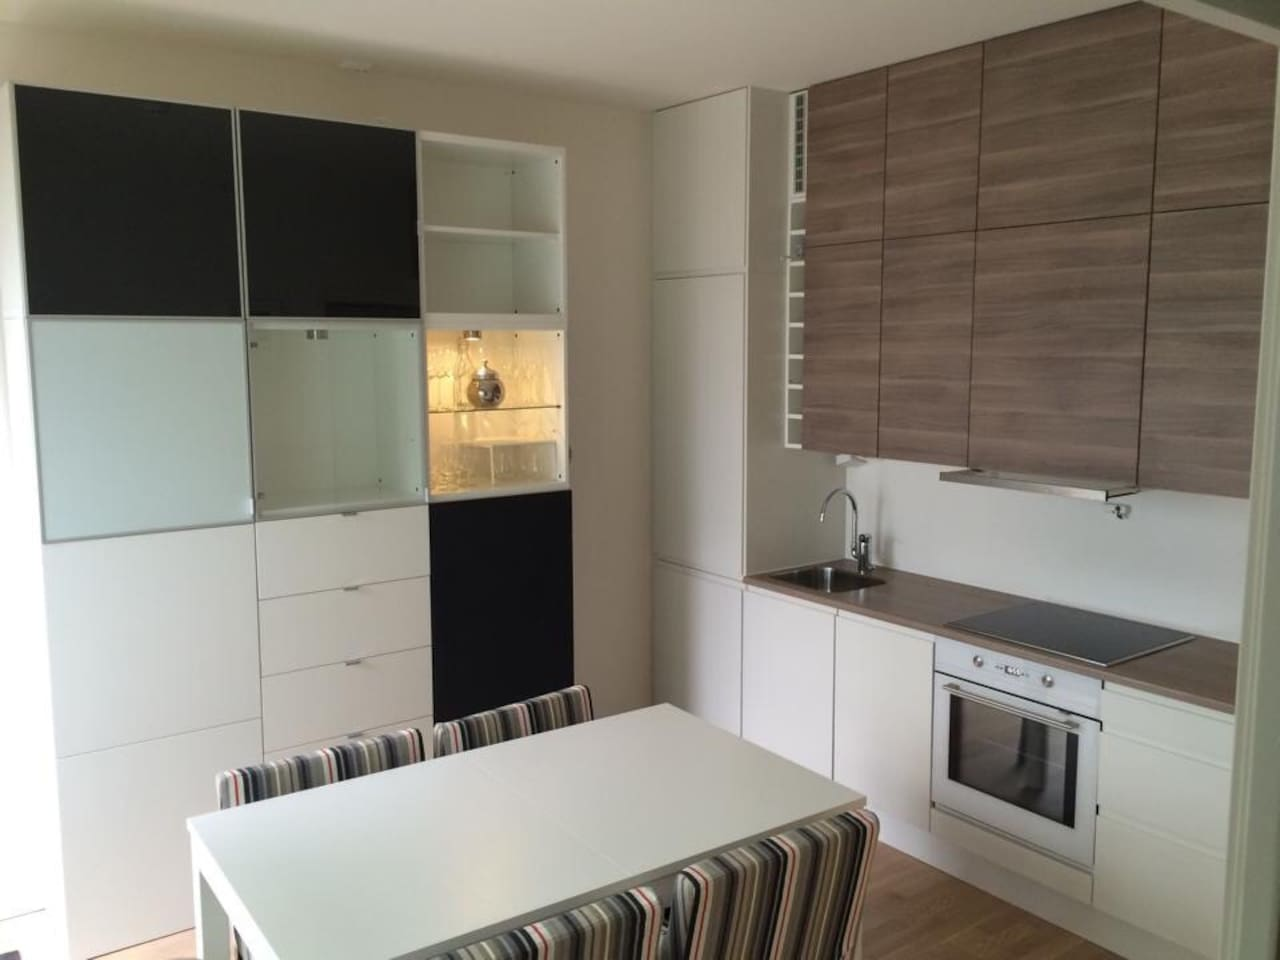 A spaceouse kitchen with eating area